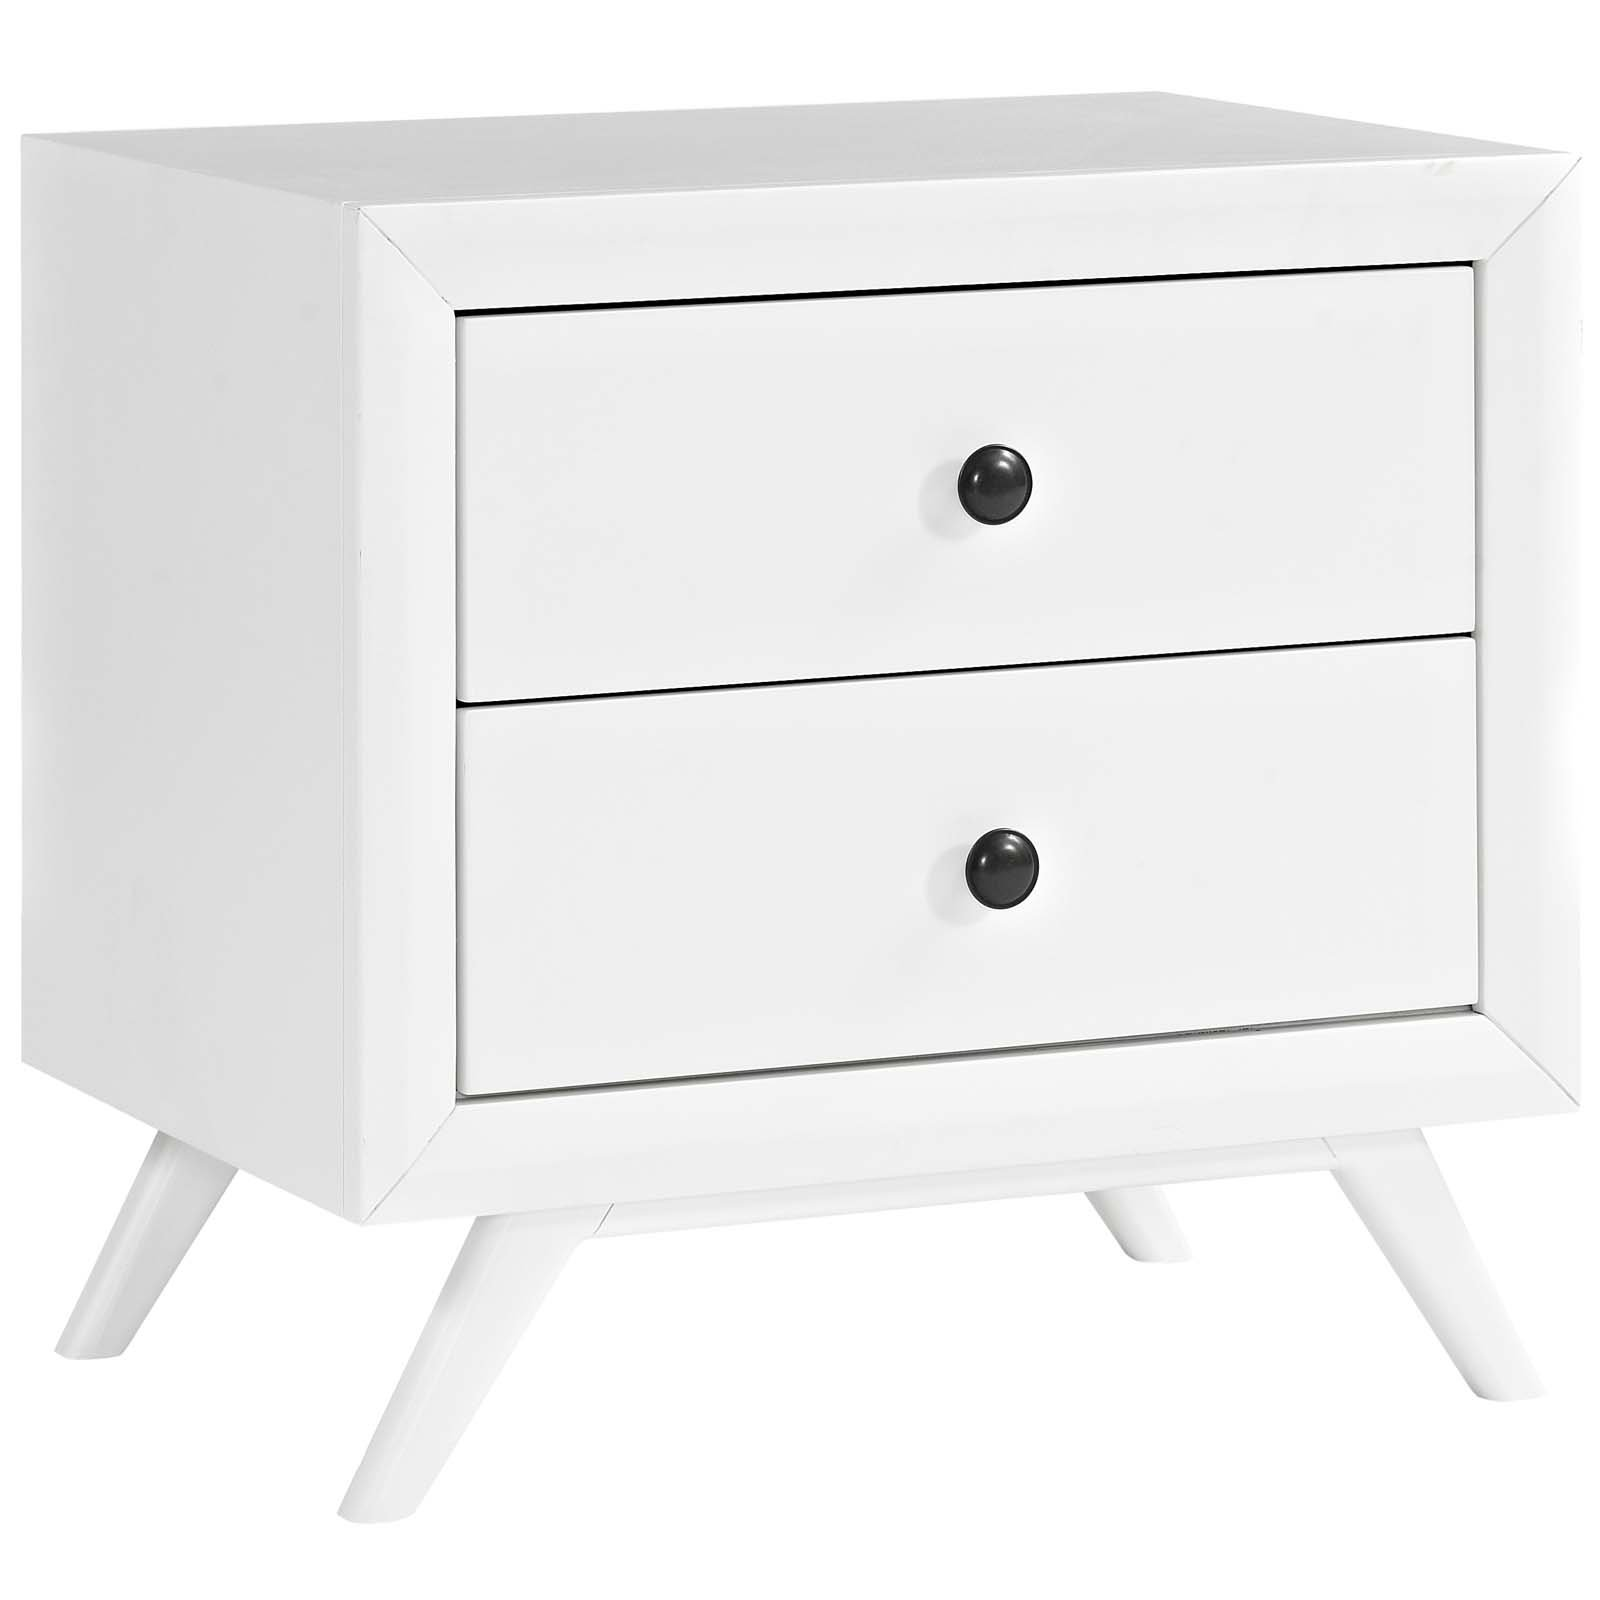 Modway Tracy Mid-Century Modern Wood Nightstand in White